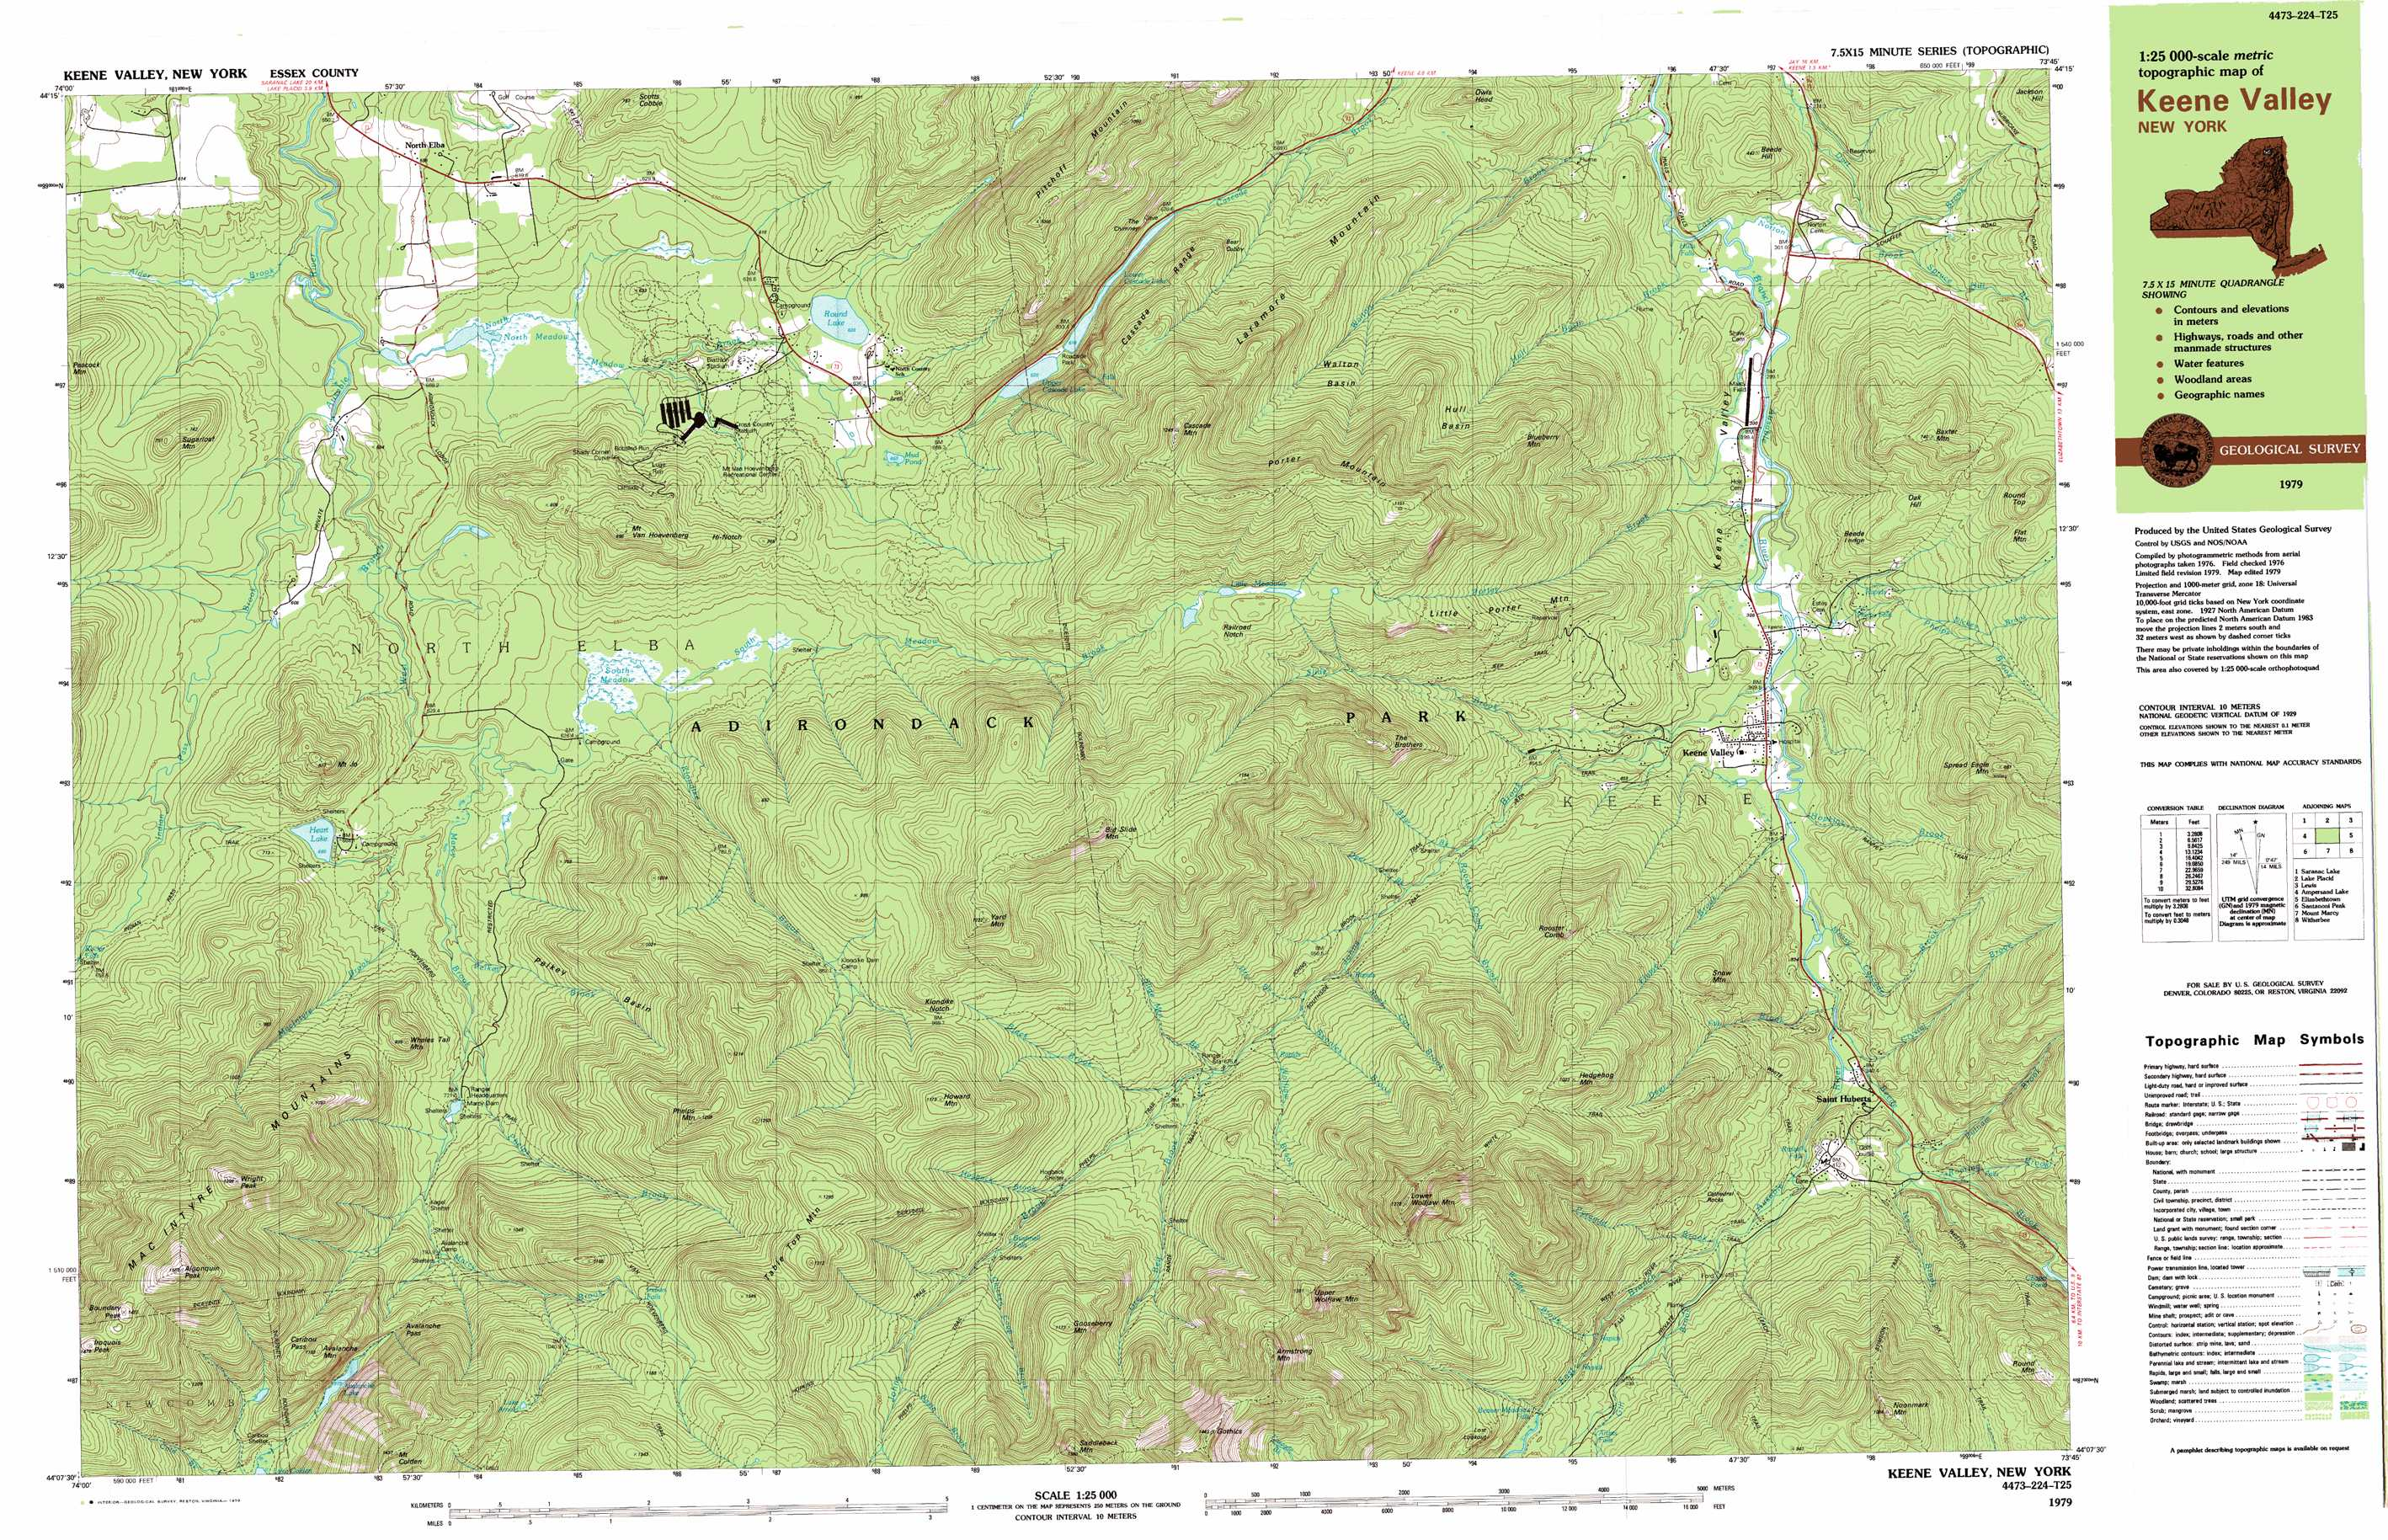 Keene Valley Topographic Map NY USGS Topo Quad B - Where to buy us topo maps